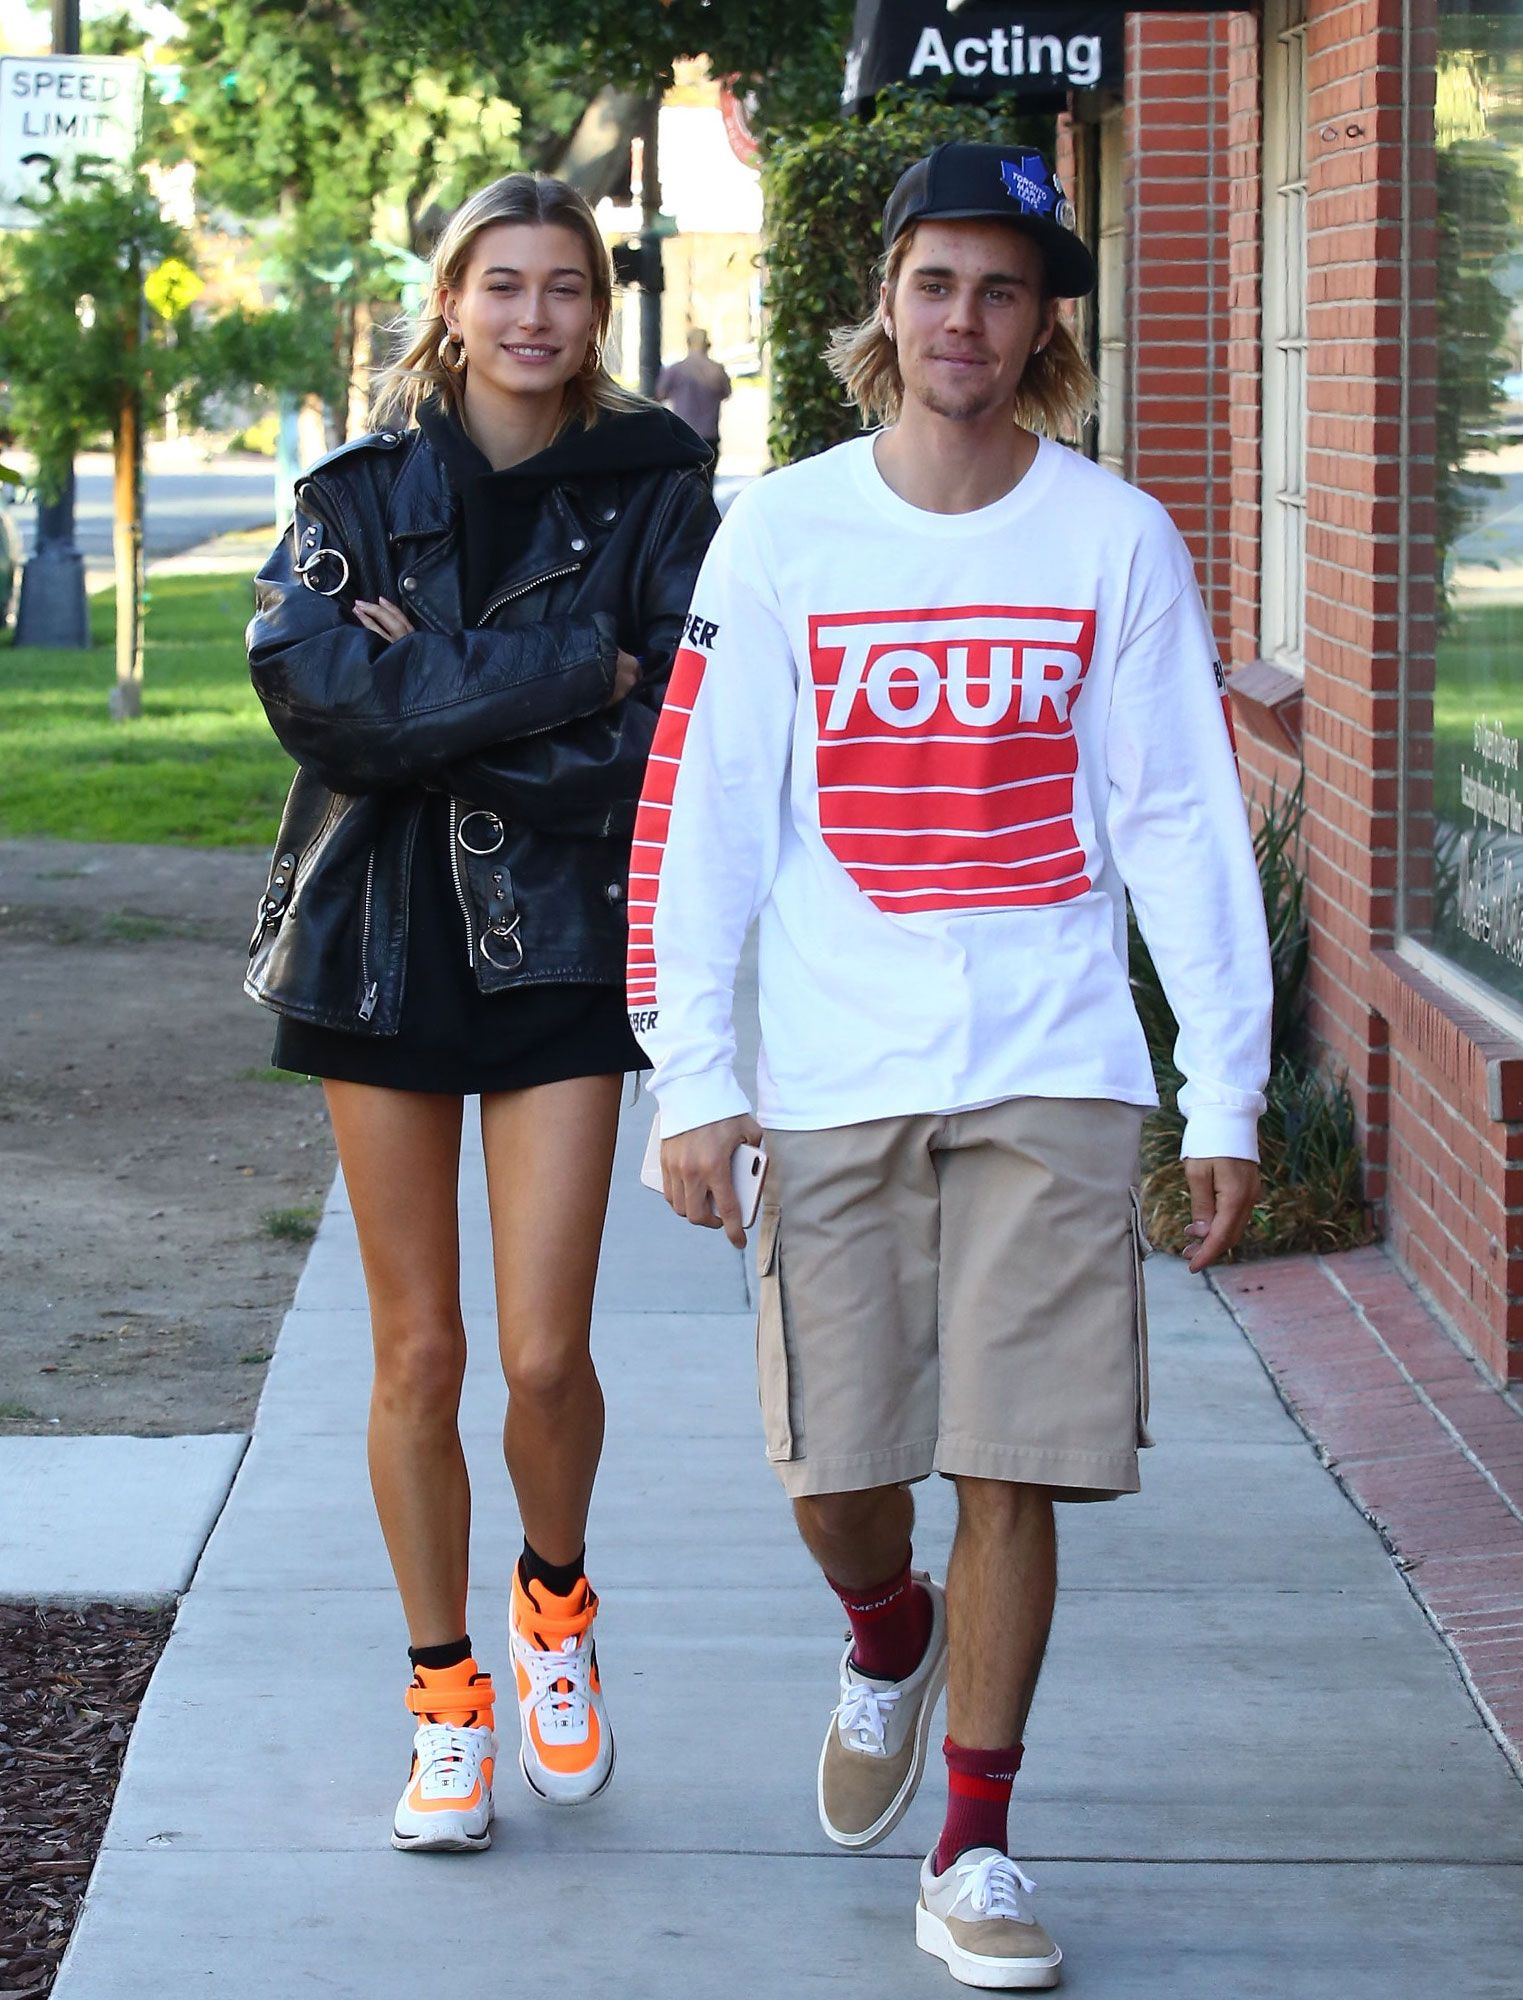 Justin Bieber And Wife Hailey Baldwin All Smiles After Source Says He S Not Over Selena Gomez Hailey Baldwin Street Style Hailey Baldwin Justin Bieber